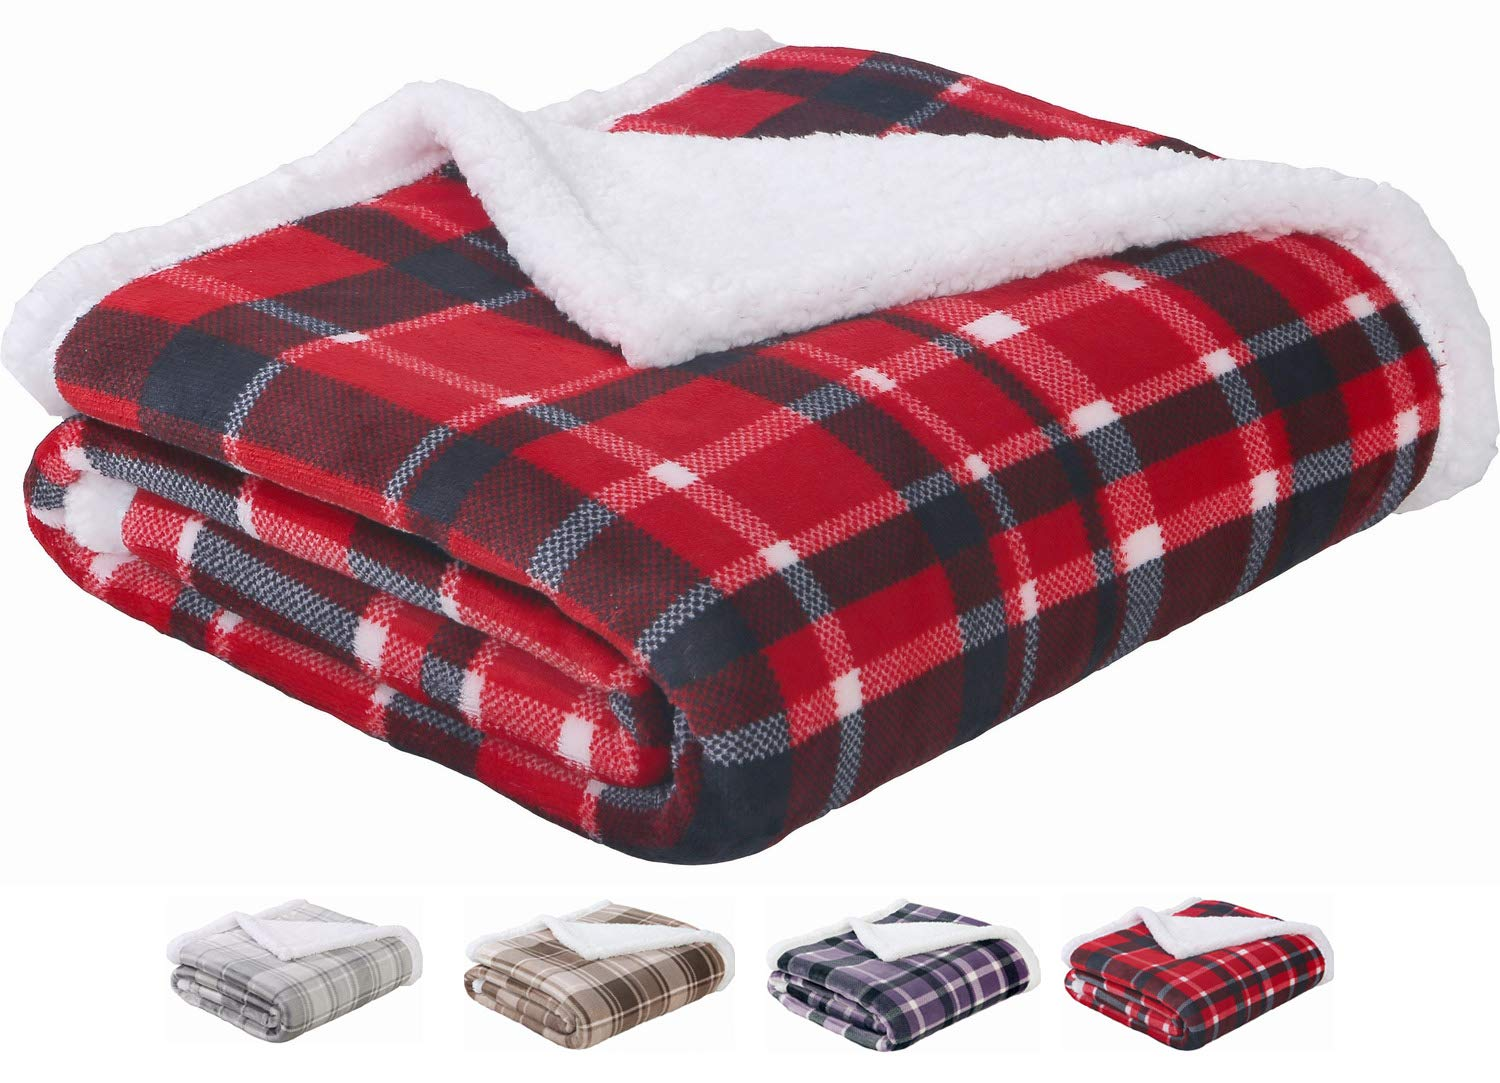 "SEDONA HOUSE Sherpa Blanket Throw Red Plaid - Luxury Flannel Fleece Warm Cozy Fuzzy Blanket, Size 50""x60"""